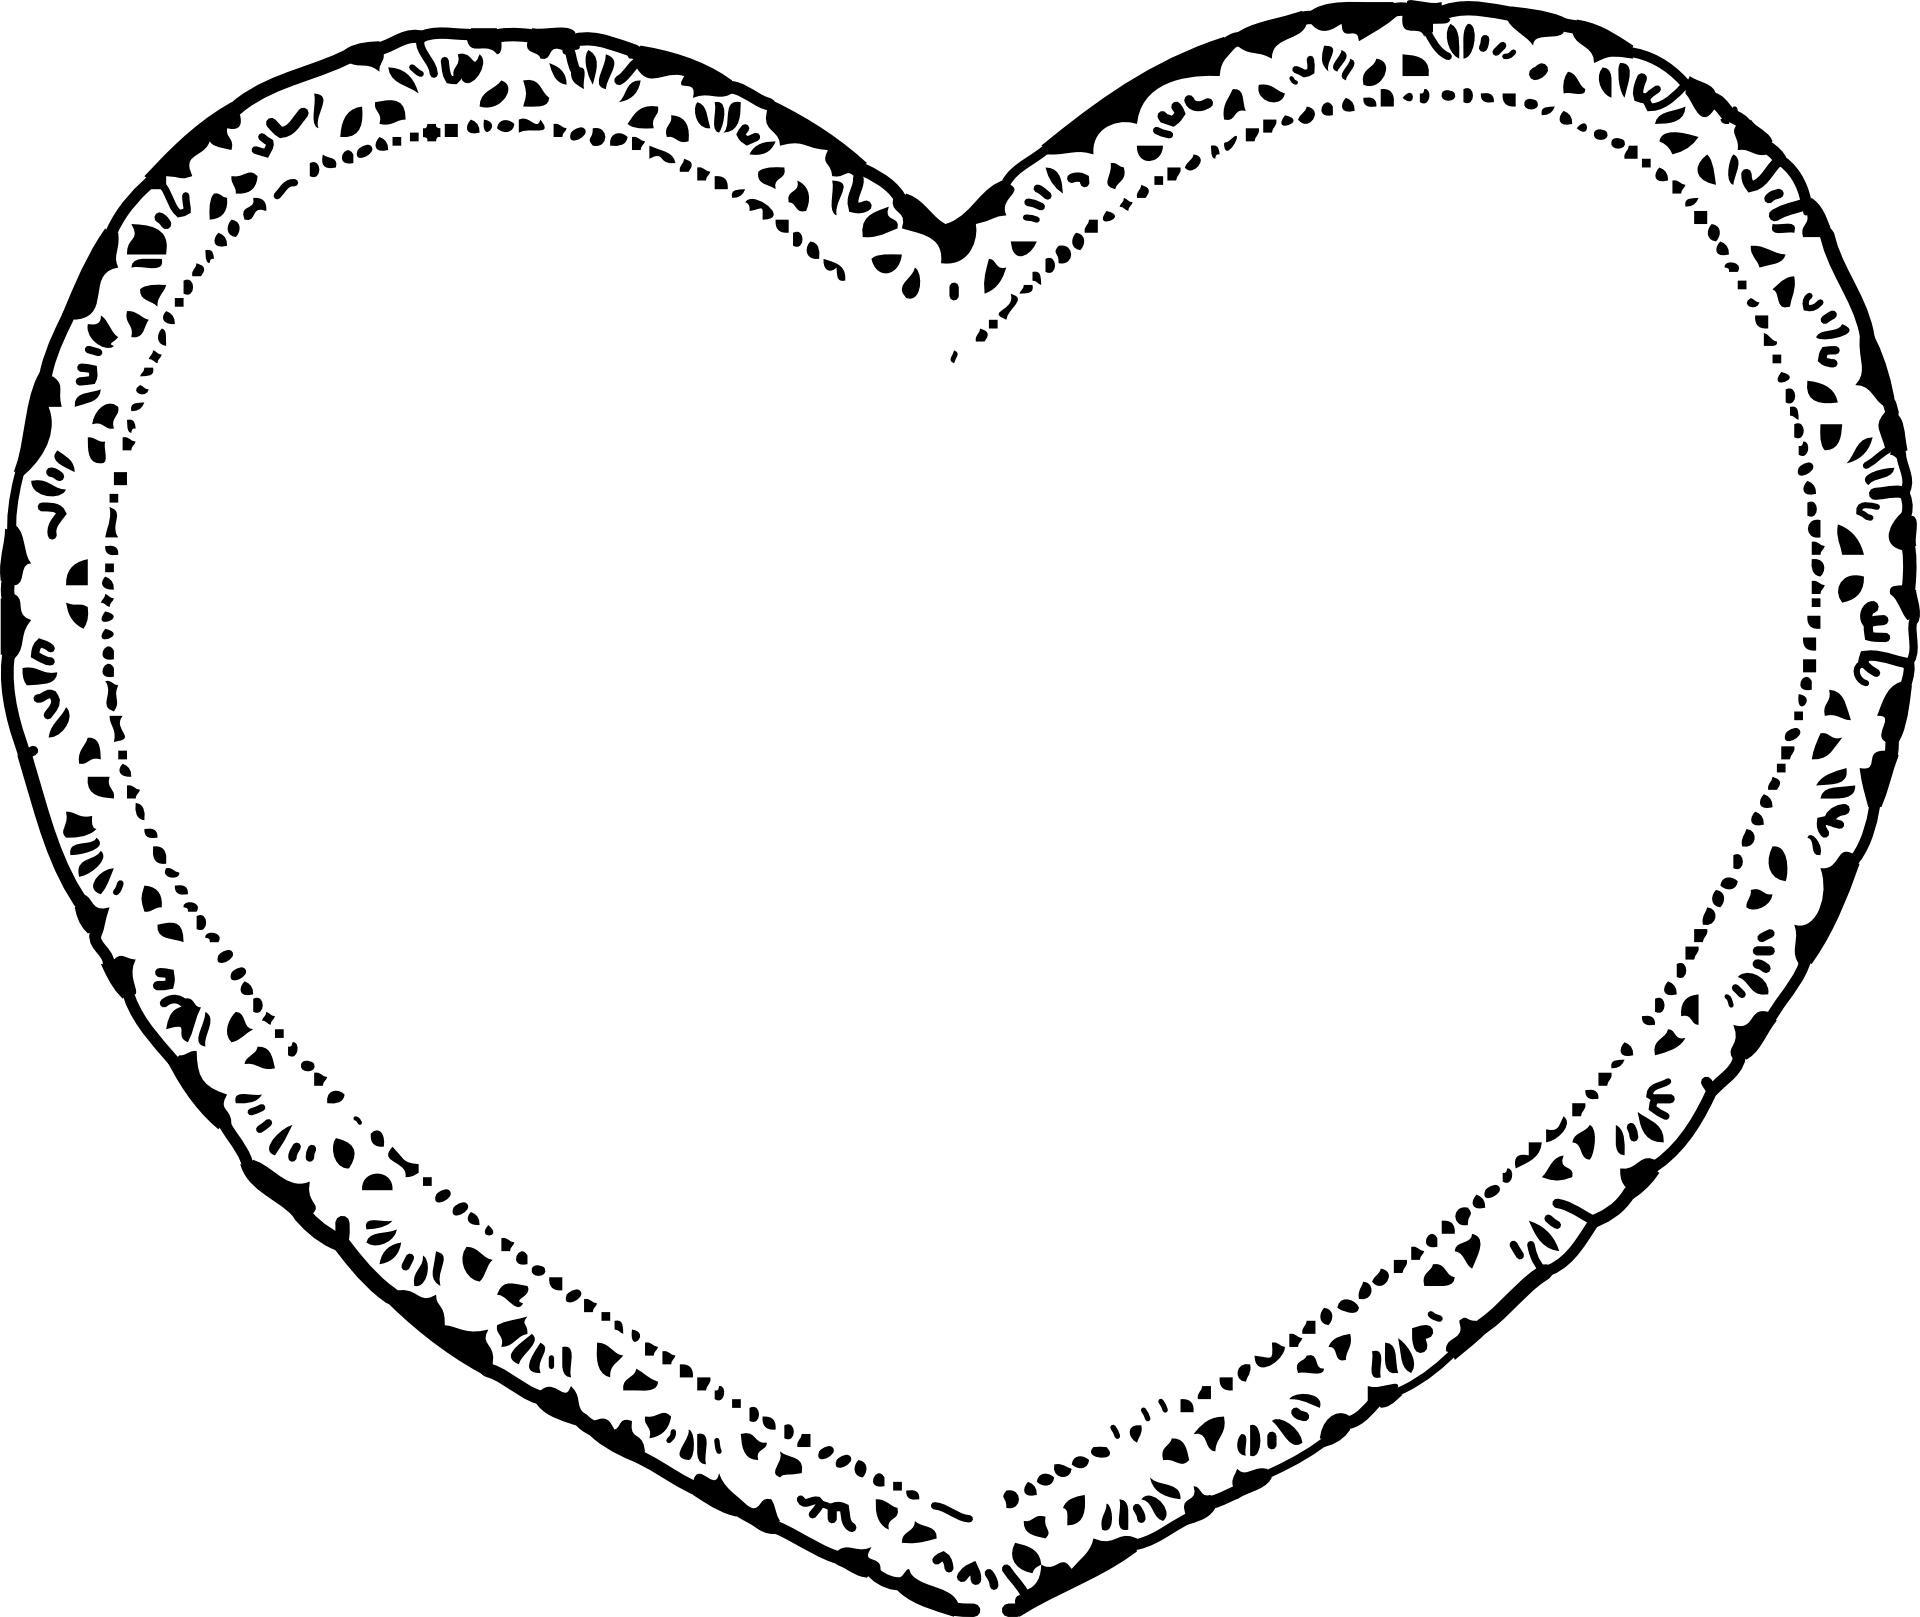 Square clipart black and white. Valentines day heart clip